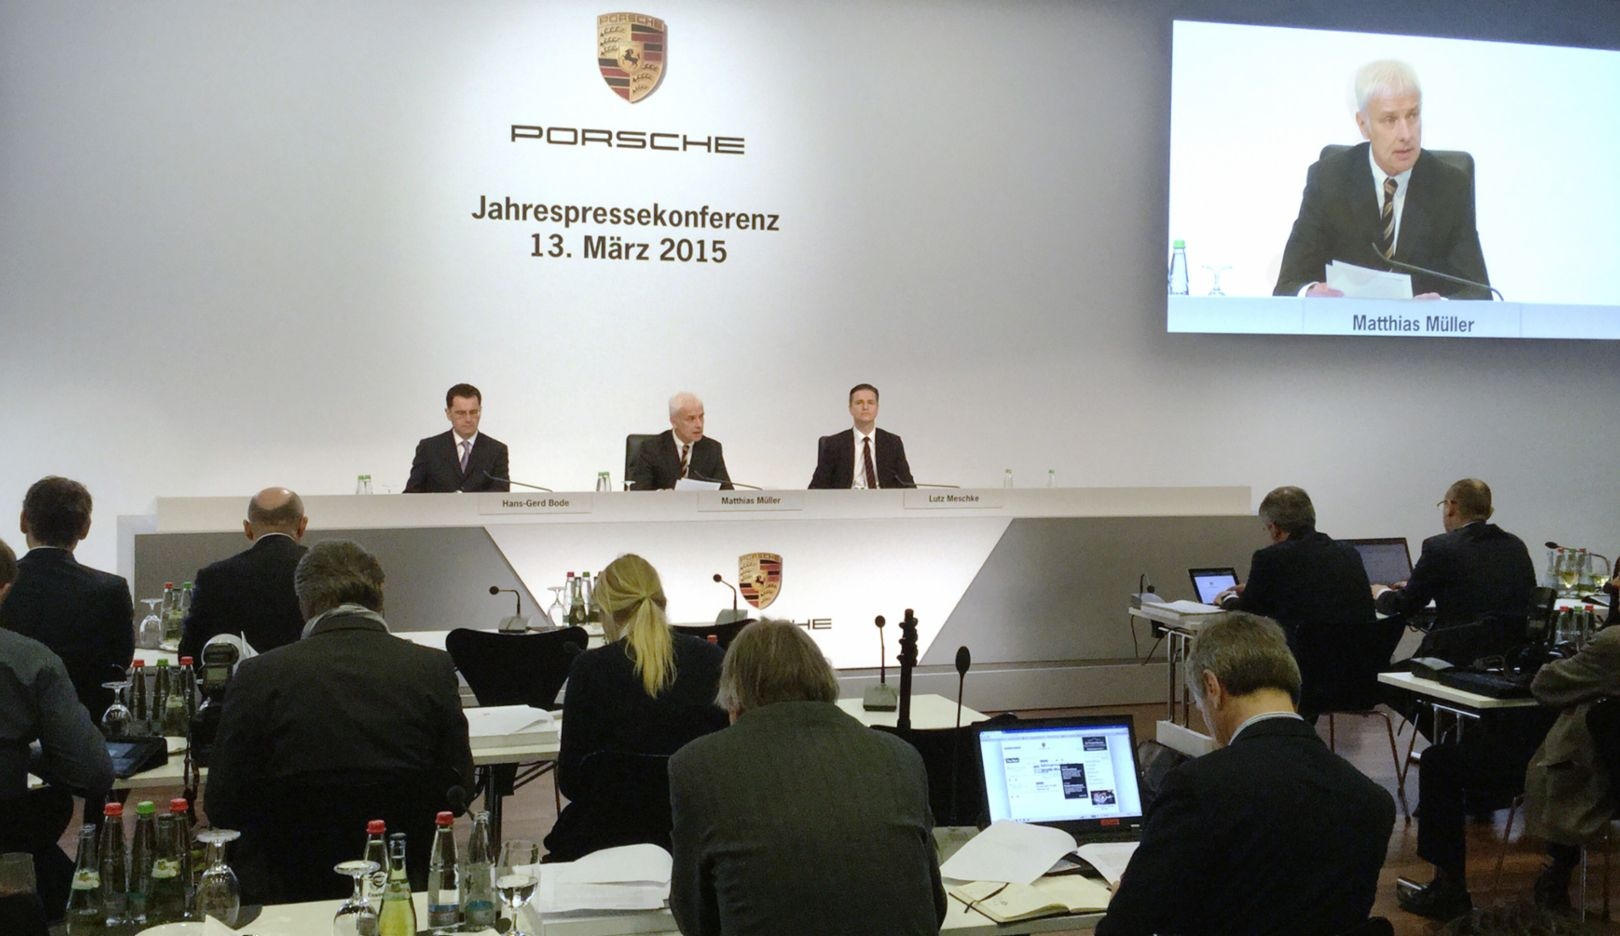 Vice President Communications Hans-Gerd Bode, CEO Matthias Müller,CFO Lutz Meschke (l-r), annual press conference, Porsche Museum, 2015, Porsche AG